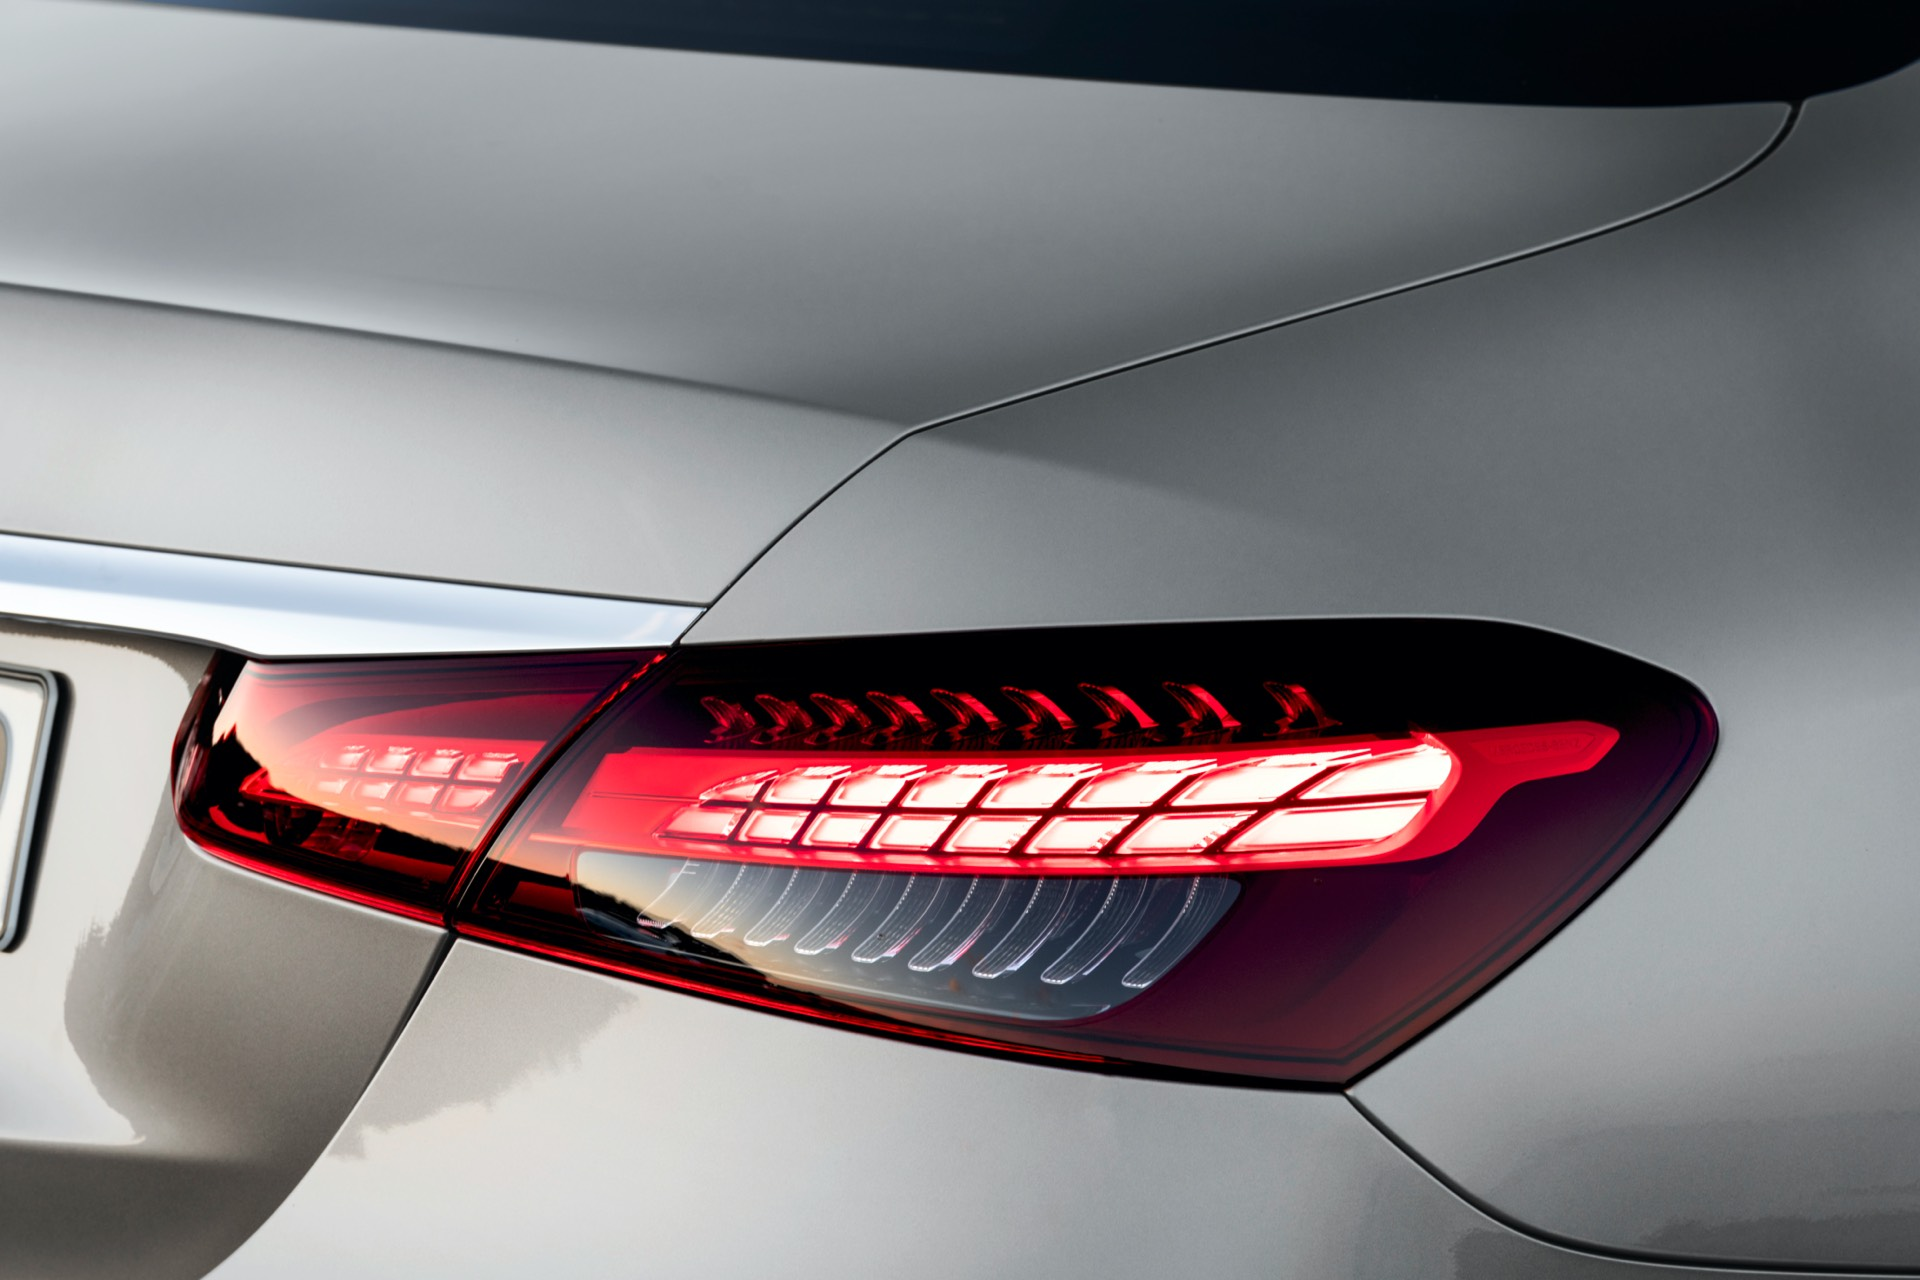 Mercedes-Benz E Class Facelift Rear Lights